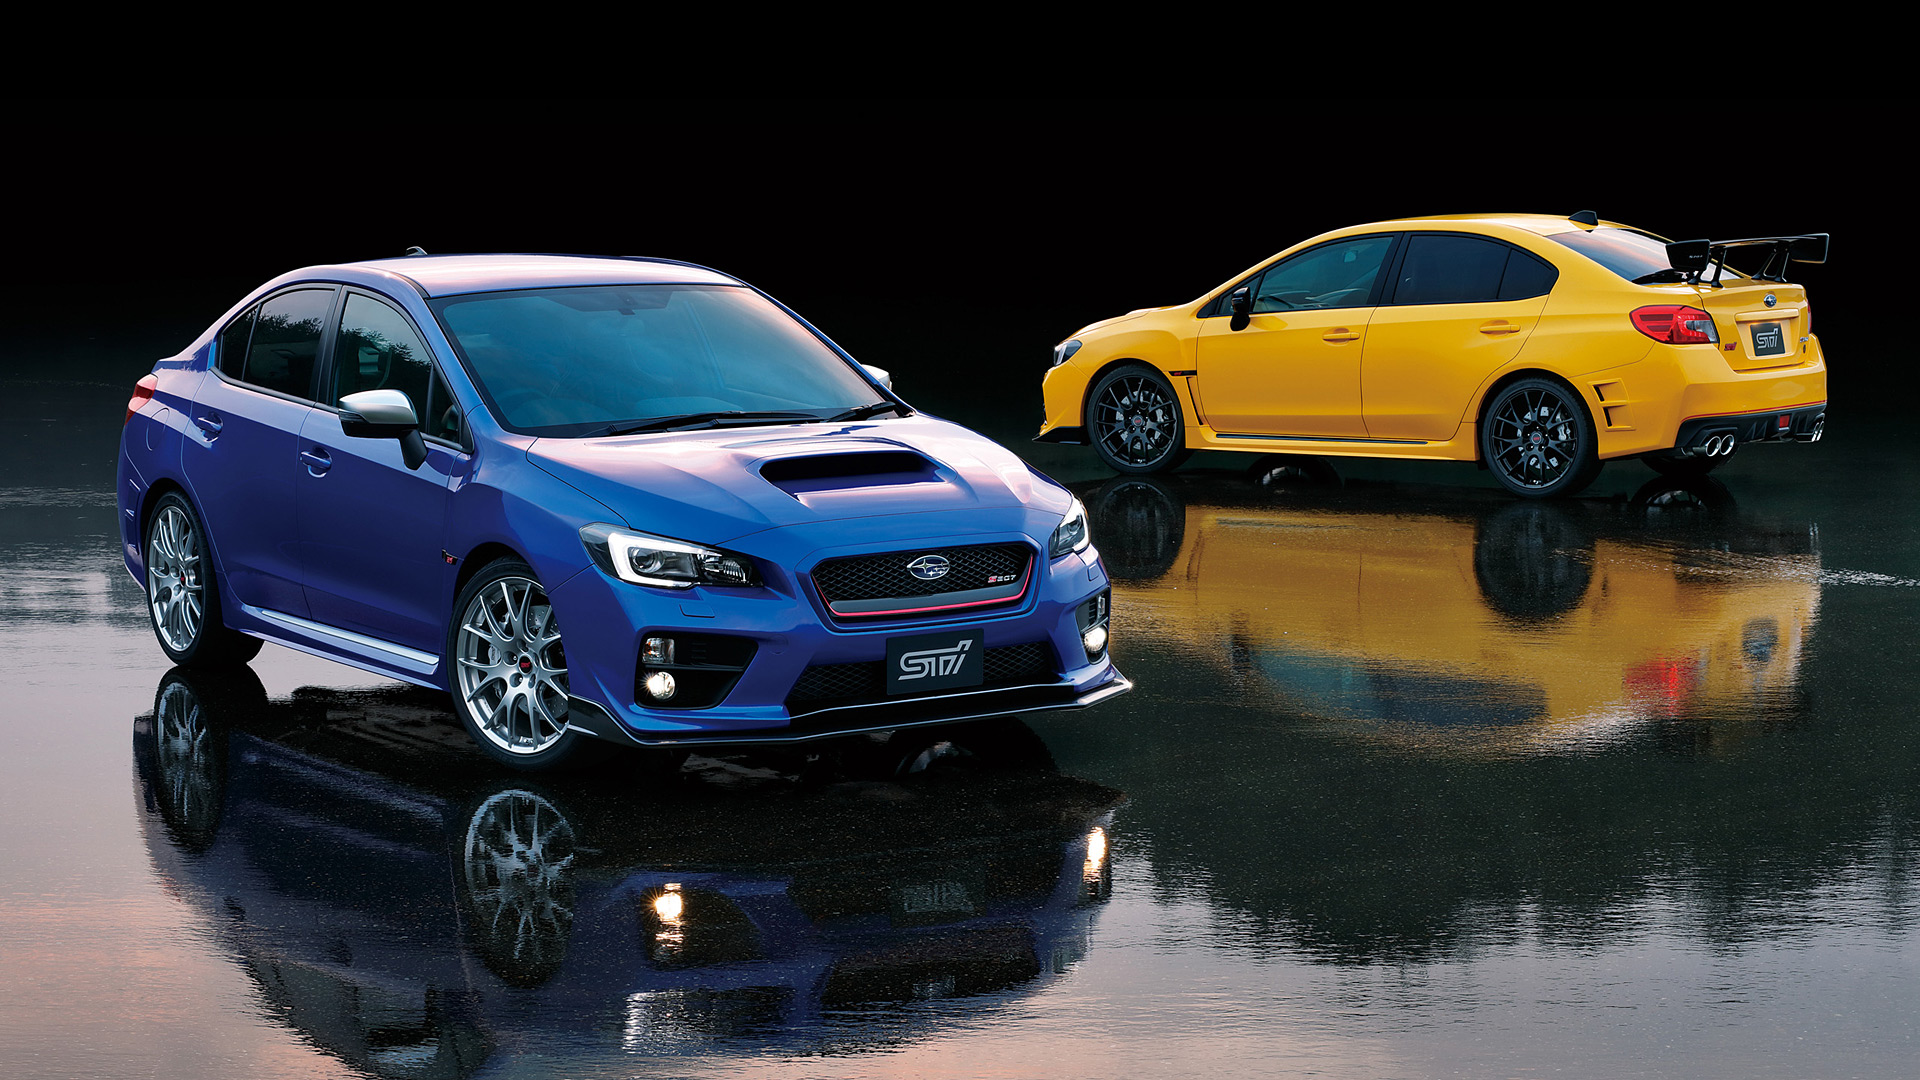 2018 Wrx Hatchback 2019 2020 Top Upcoming Cars